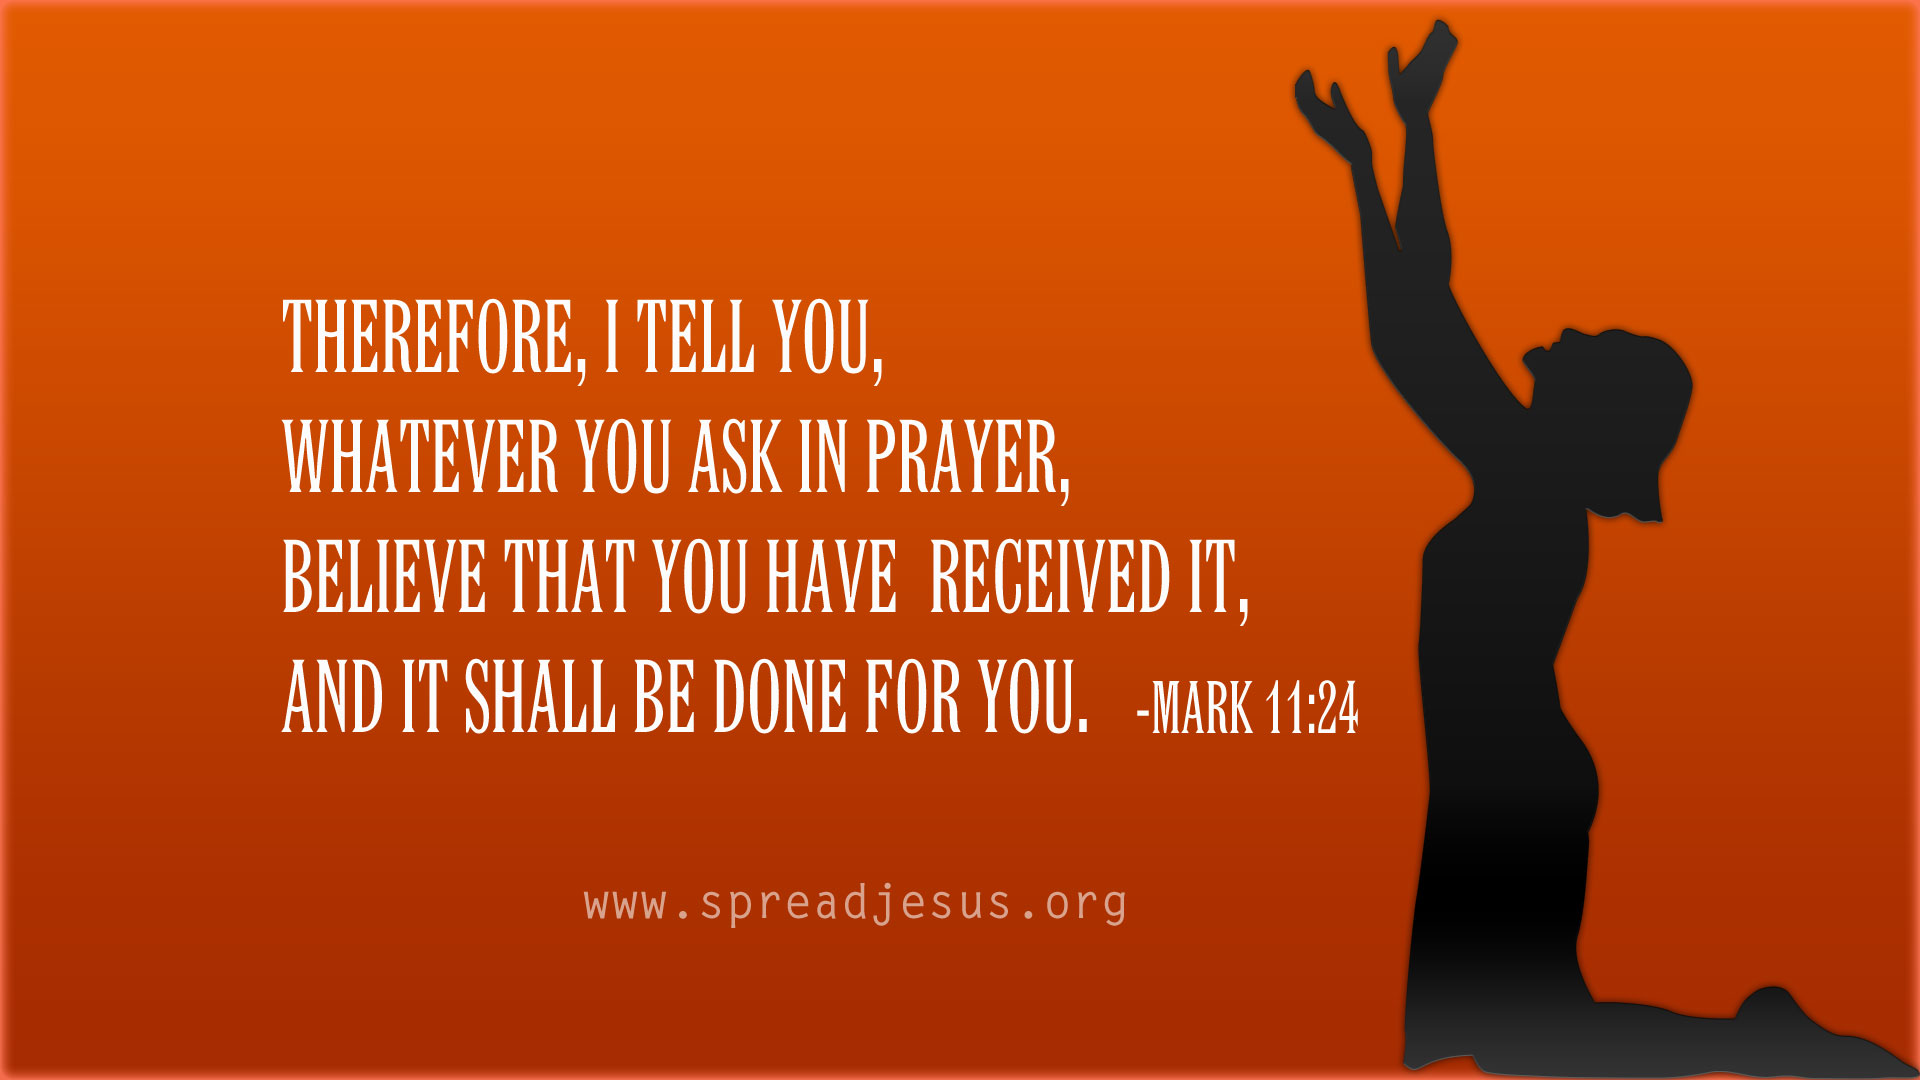 Therefore,i tell you, whatever you ask in prayer, believe that you have received it, and it shall be done for you.-Mark 11:24